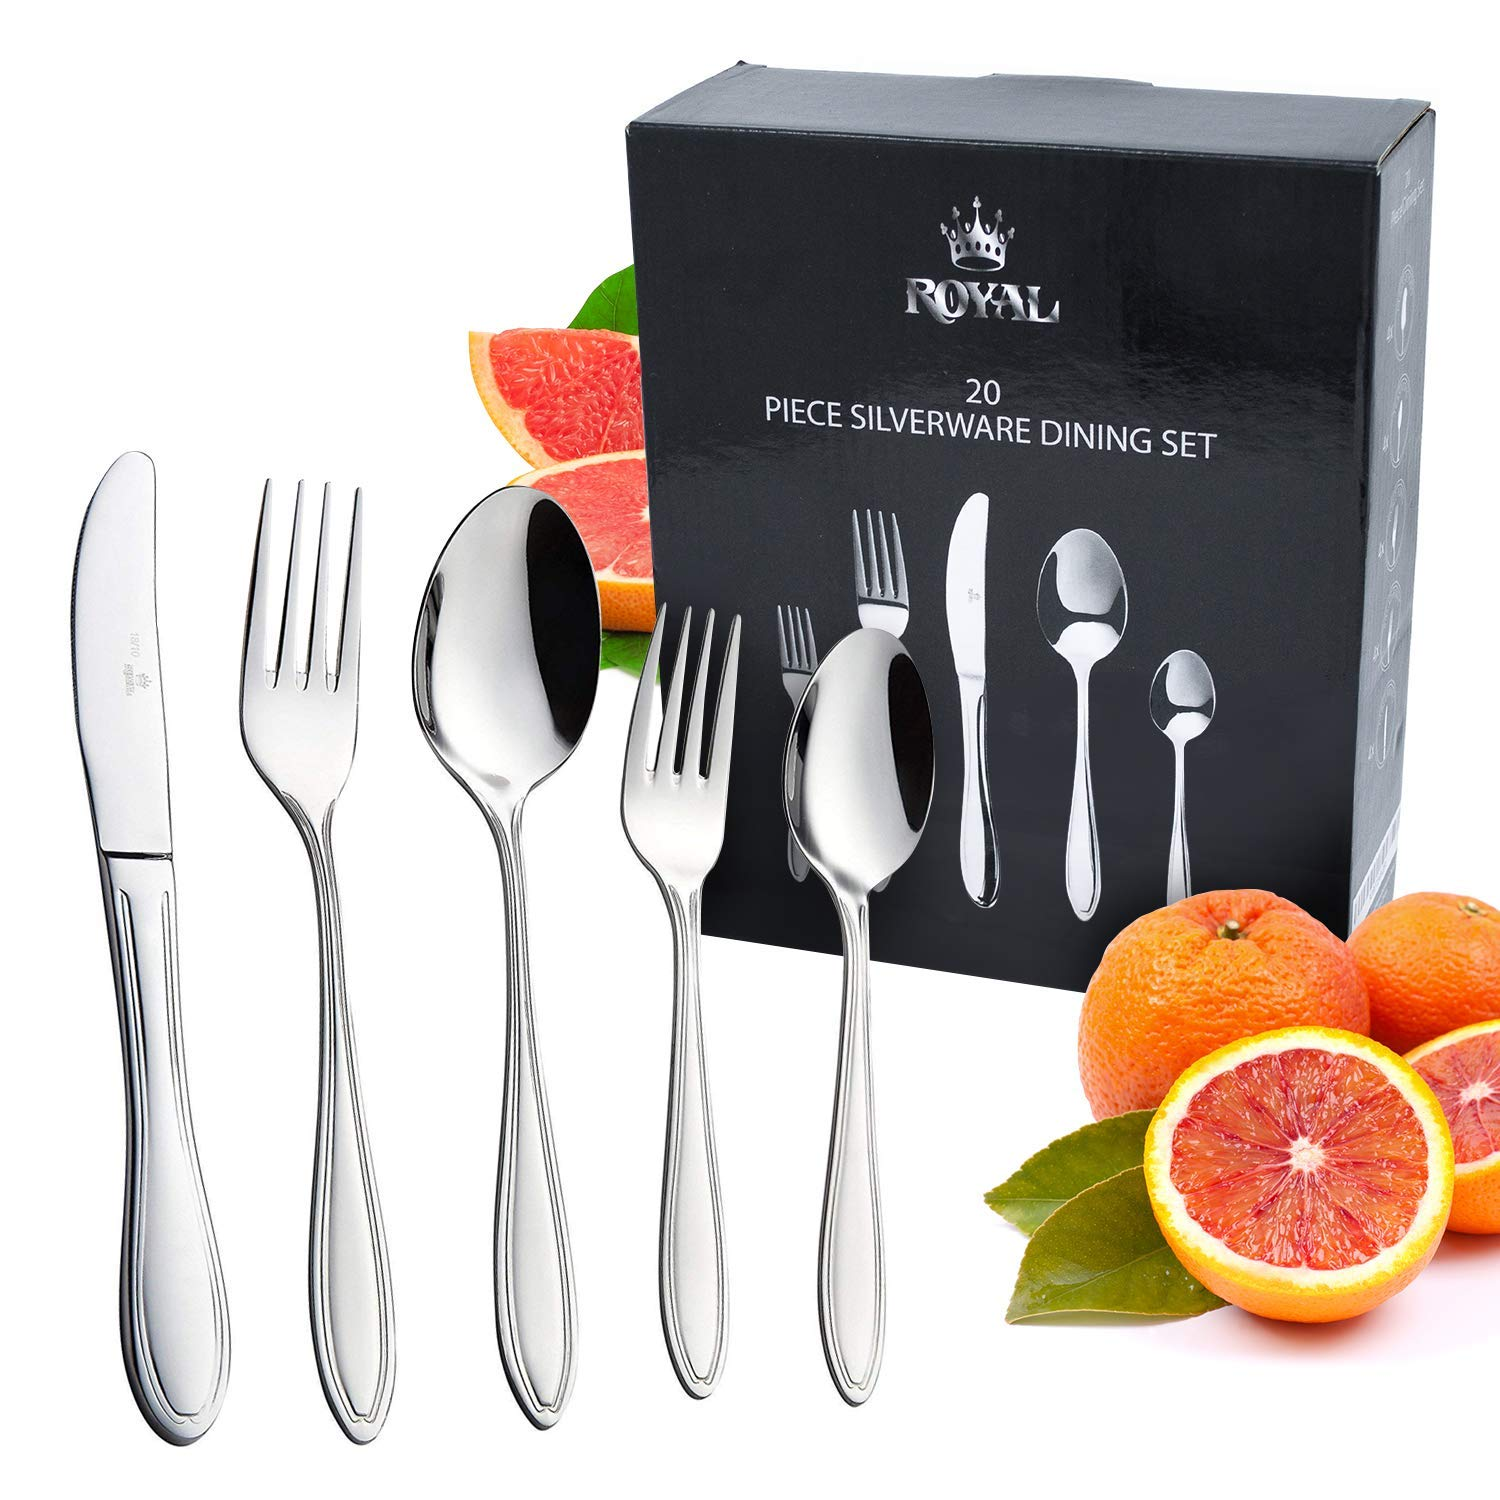 Royal 20-Piece Silverware Set - 18/10 Stainless Steel Utensils Forks Spoons Knives Set, Mirror Polished Cutlery Flatware Set by Royal (Image #1)